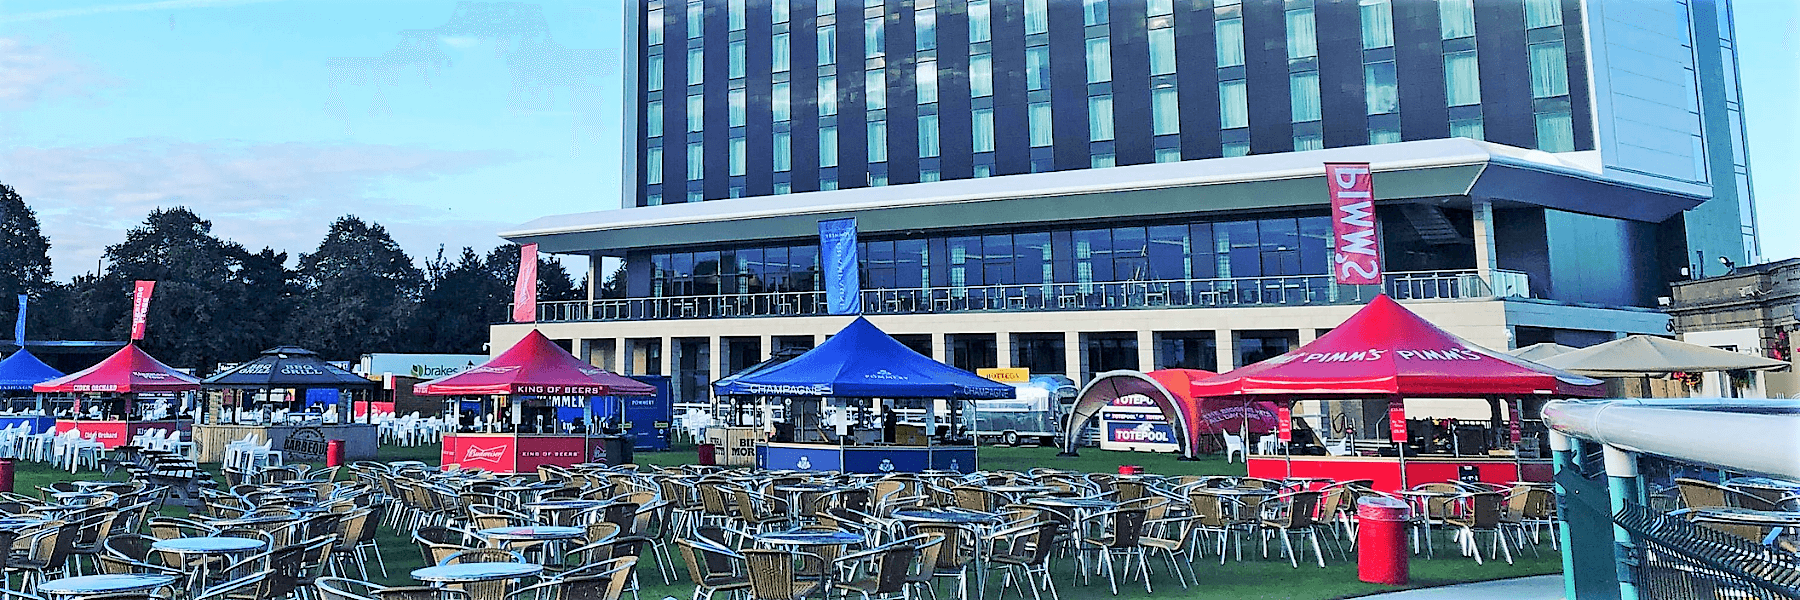 <p>Event, Mobile & Stadia Bars – Tents & Marquees – Pavilion Bars – Octagonal – Various Drinks Brands</p> <p> </p> <p>Outdoor Event Bars at Doncaster Racecourse</p> <p> </p> <p>Octagonal Pavilions branded for different drinks brands – including Roof Flags</p>